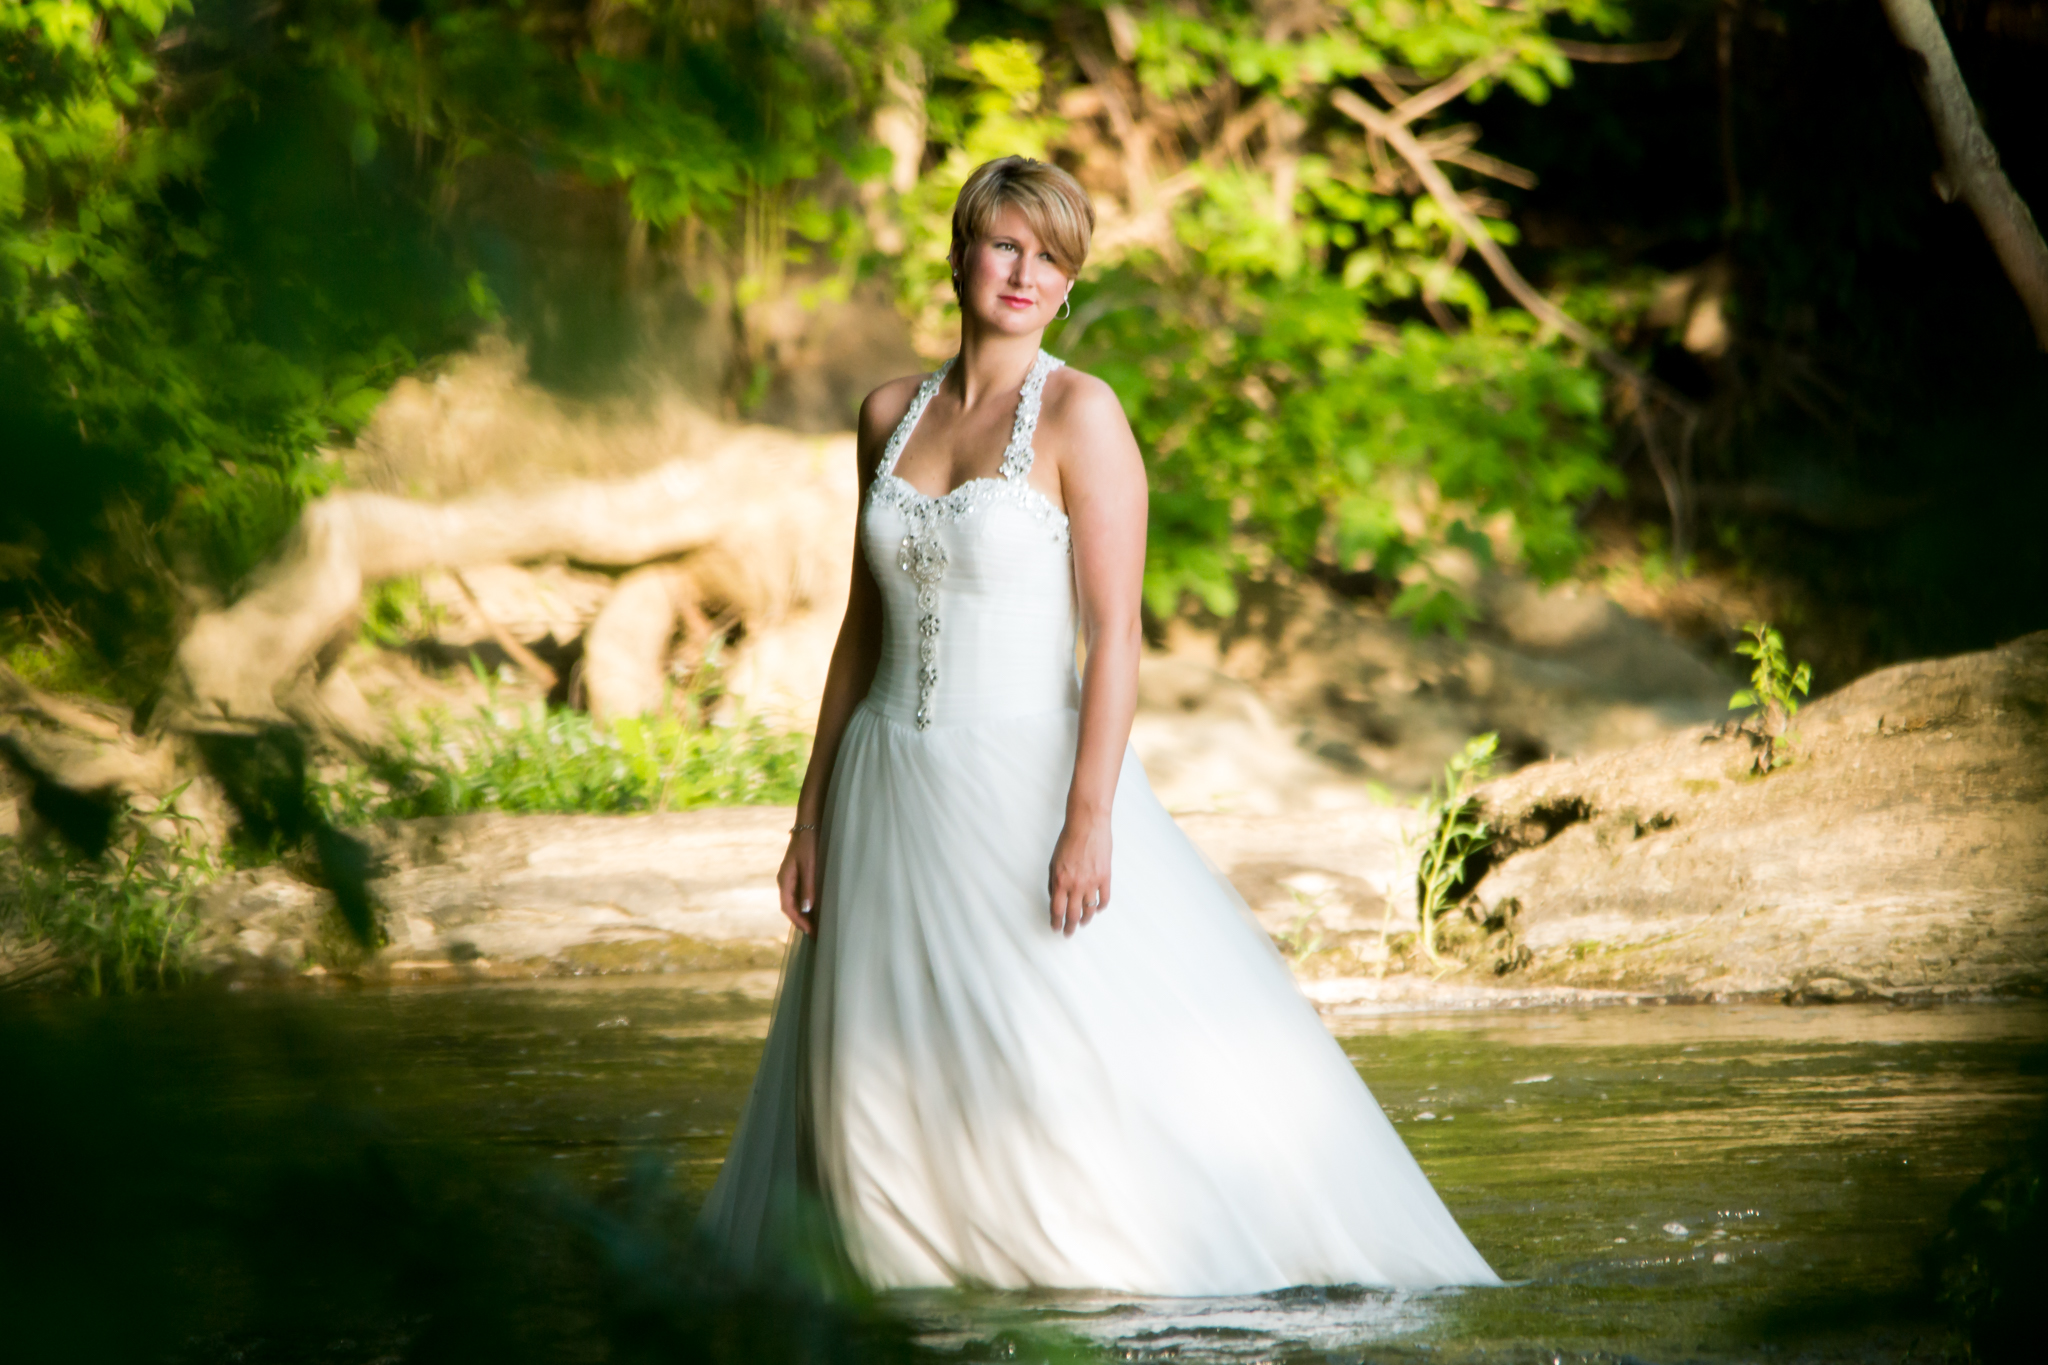 Water shoot with a wedding dress on.